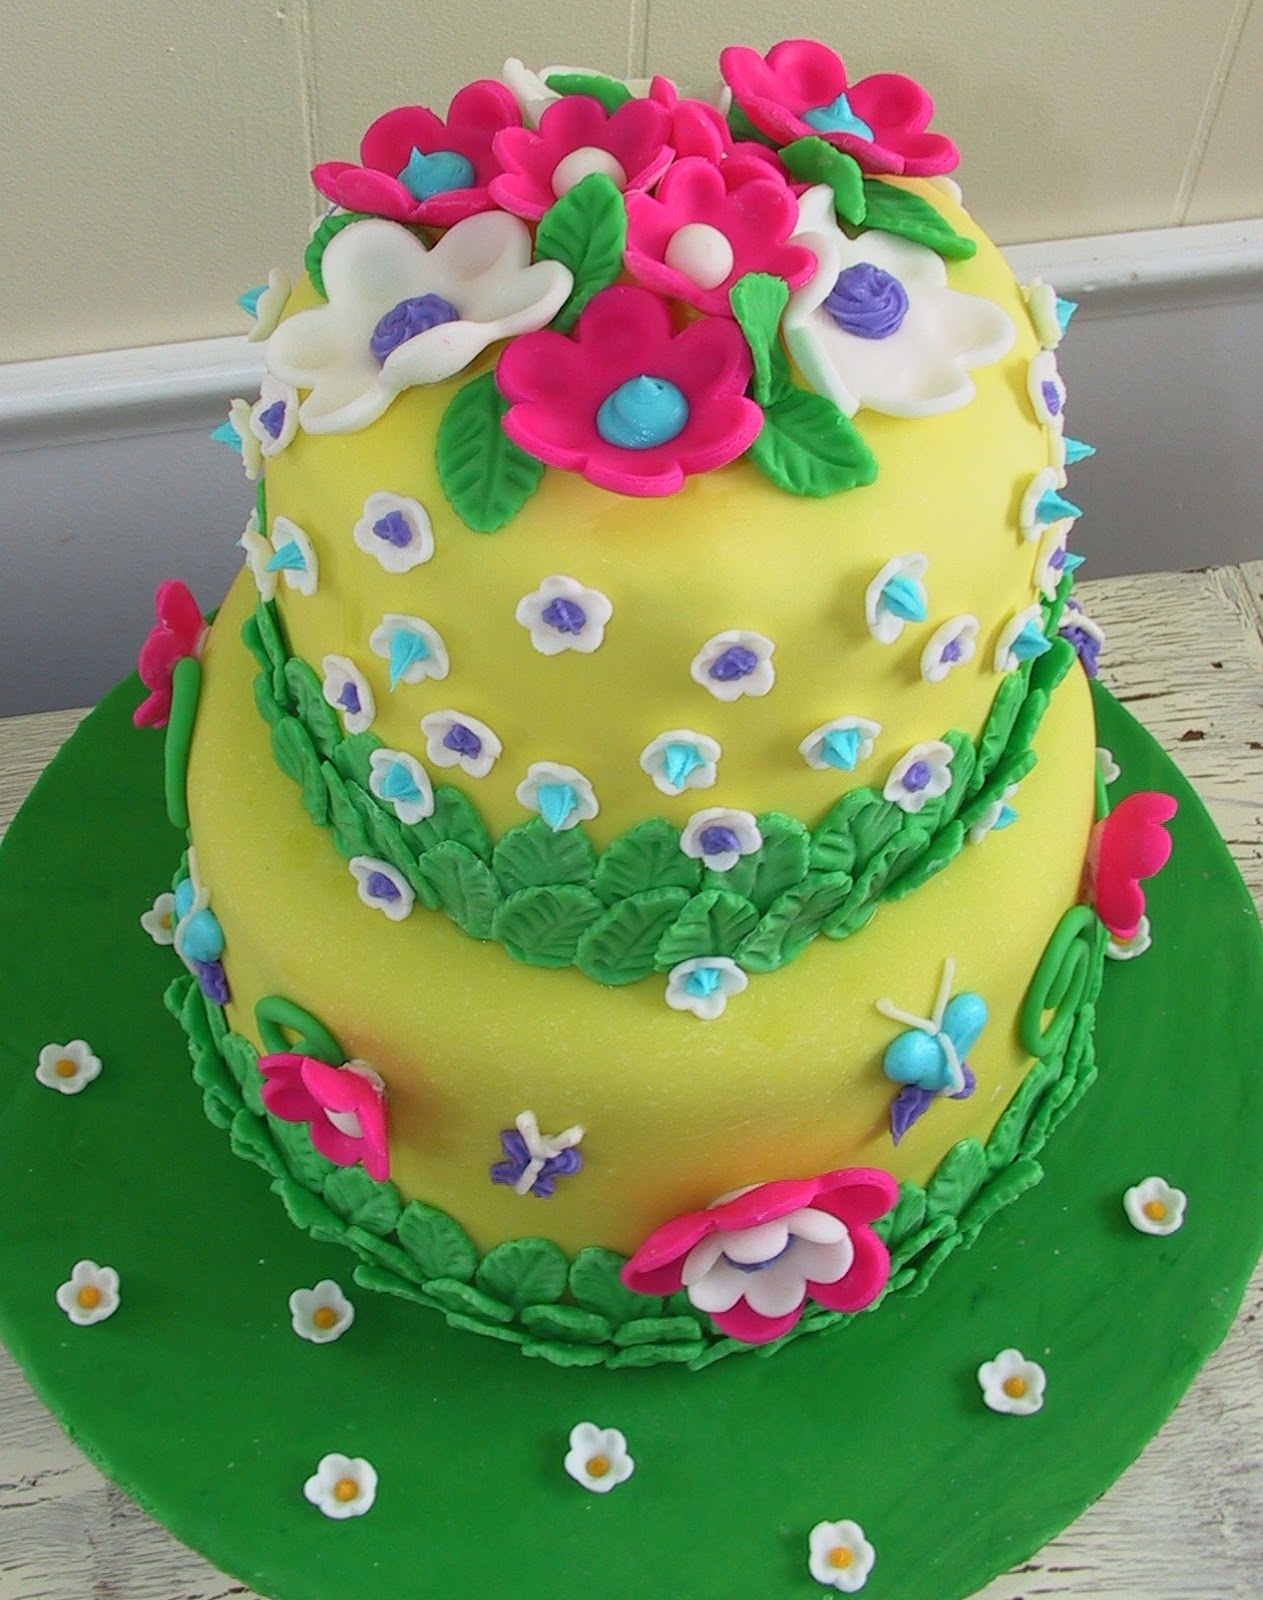 600 happy birthday wishes cakes with name and phototop happy birthday cakes photos pictures dhlflorist Image collections